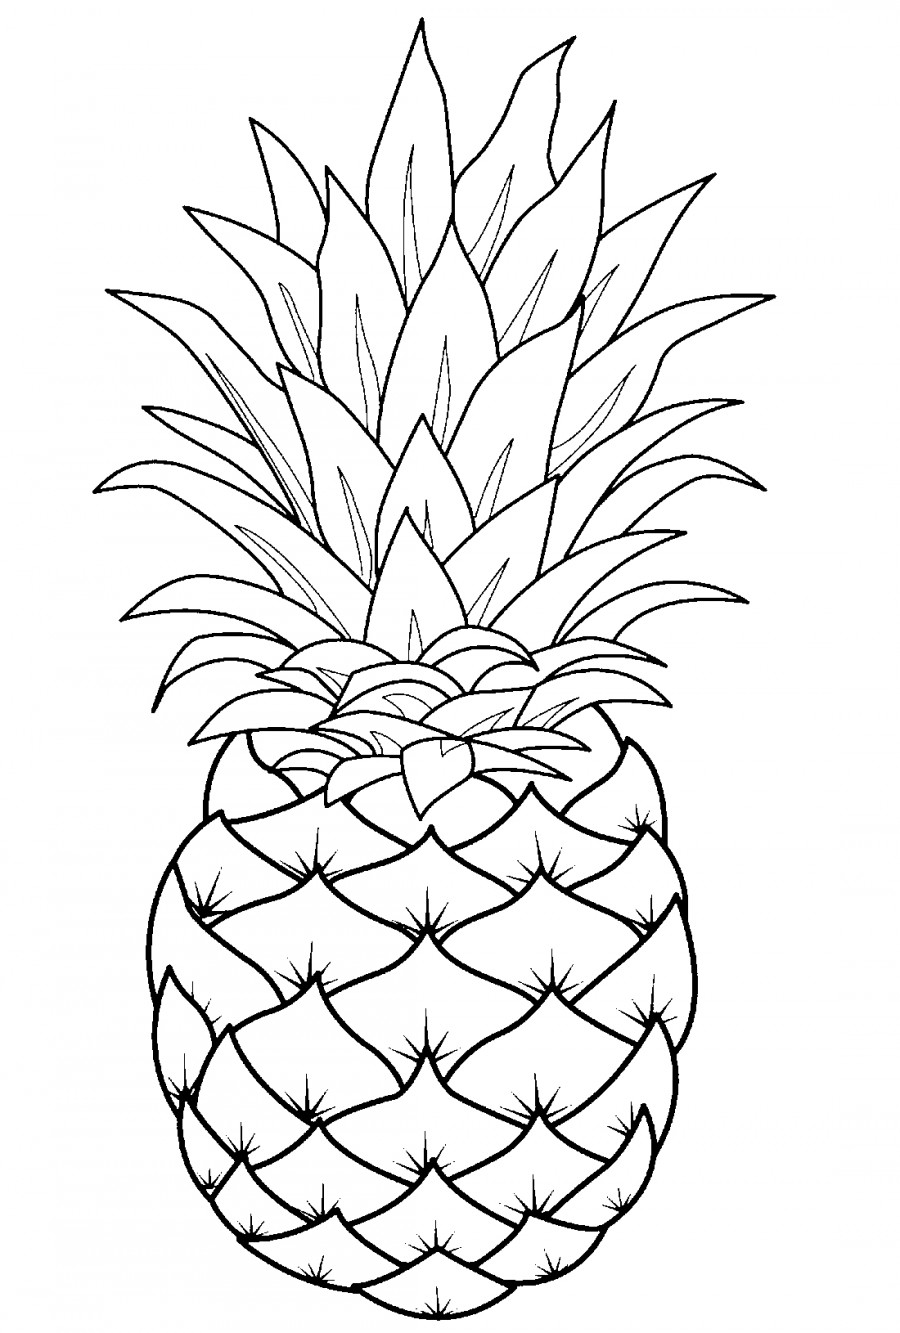 pineapple coloring image pineapple coloring pages coloring pages to download and image coloring pineapple